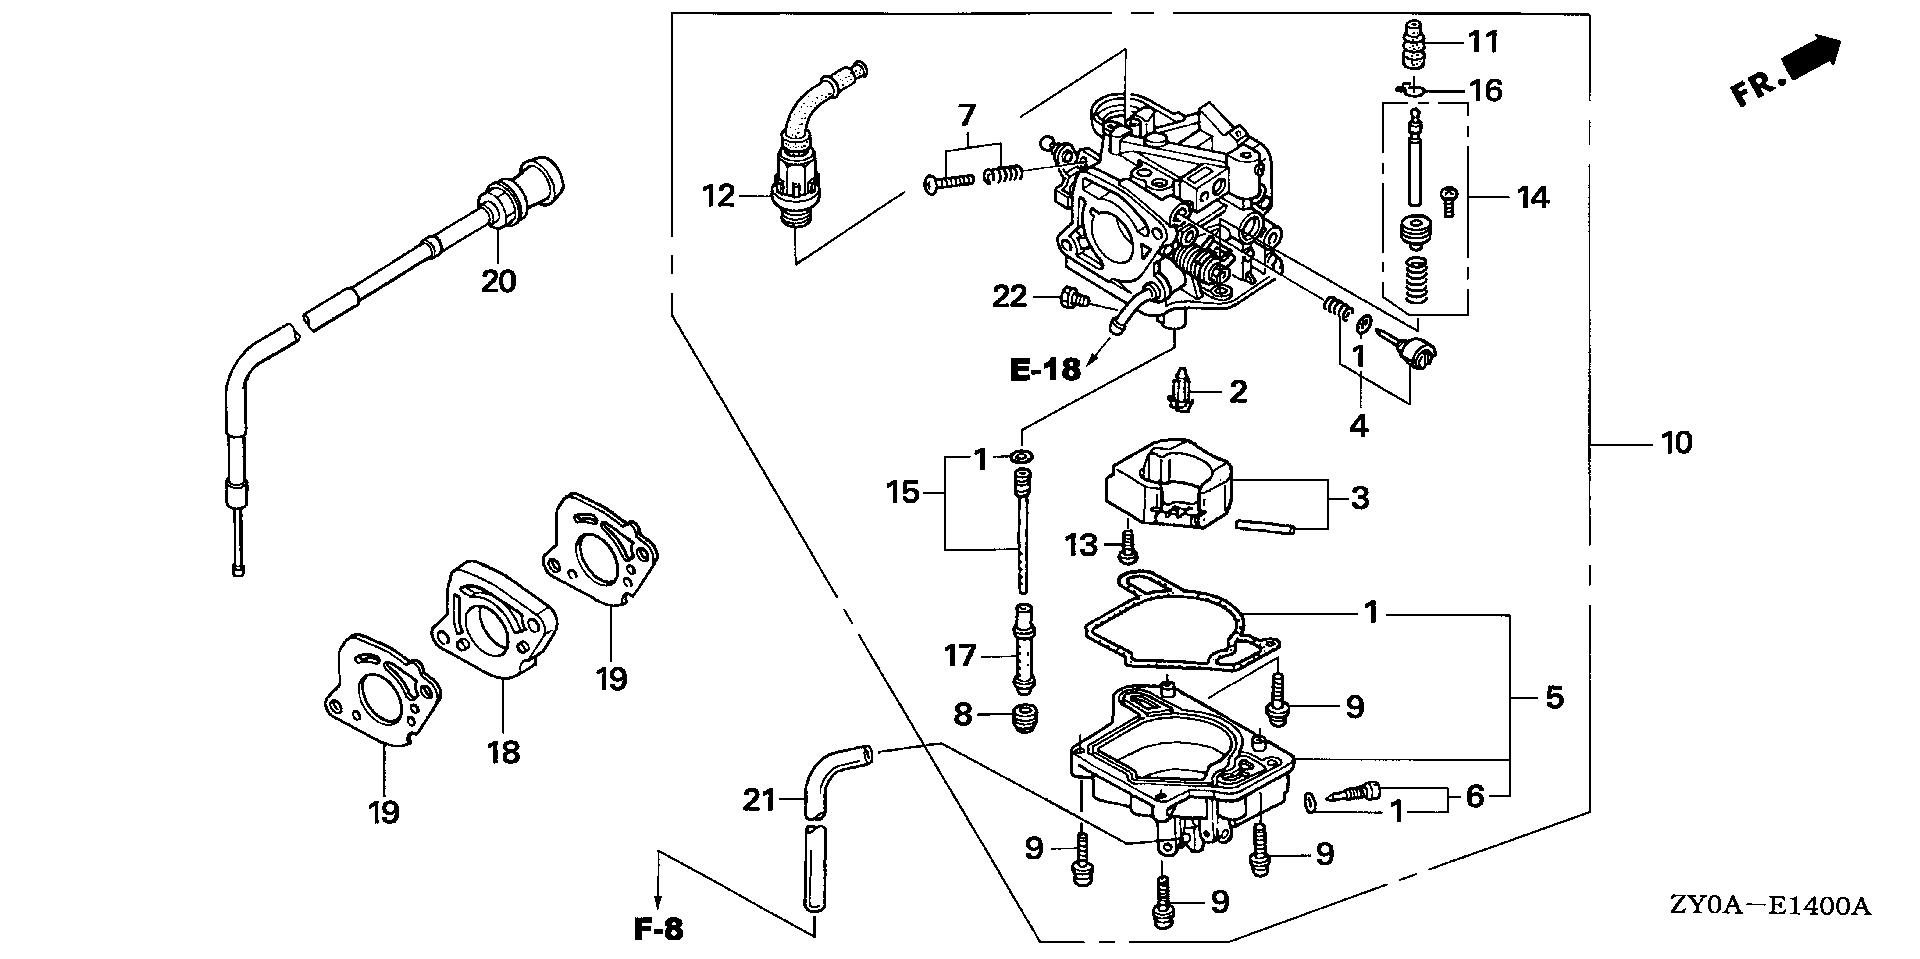 Honda Marine Parts Look Up Official Site Auto Engine Diagram Carburetor Manual